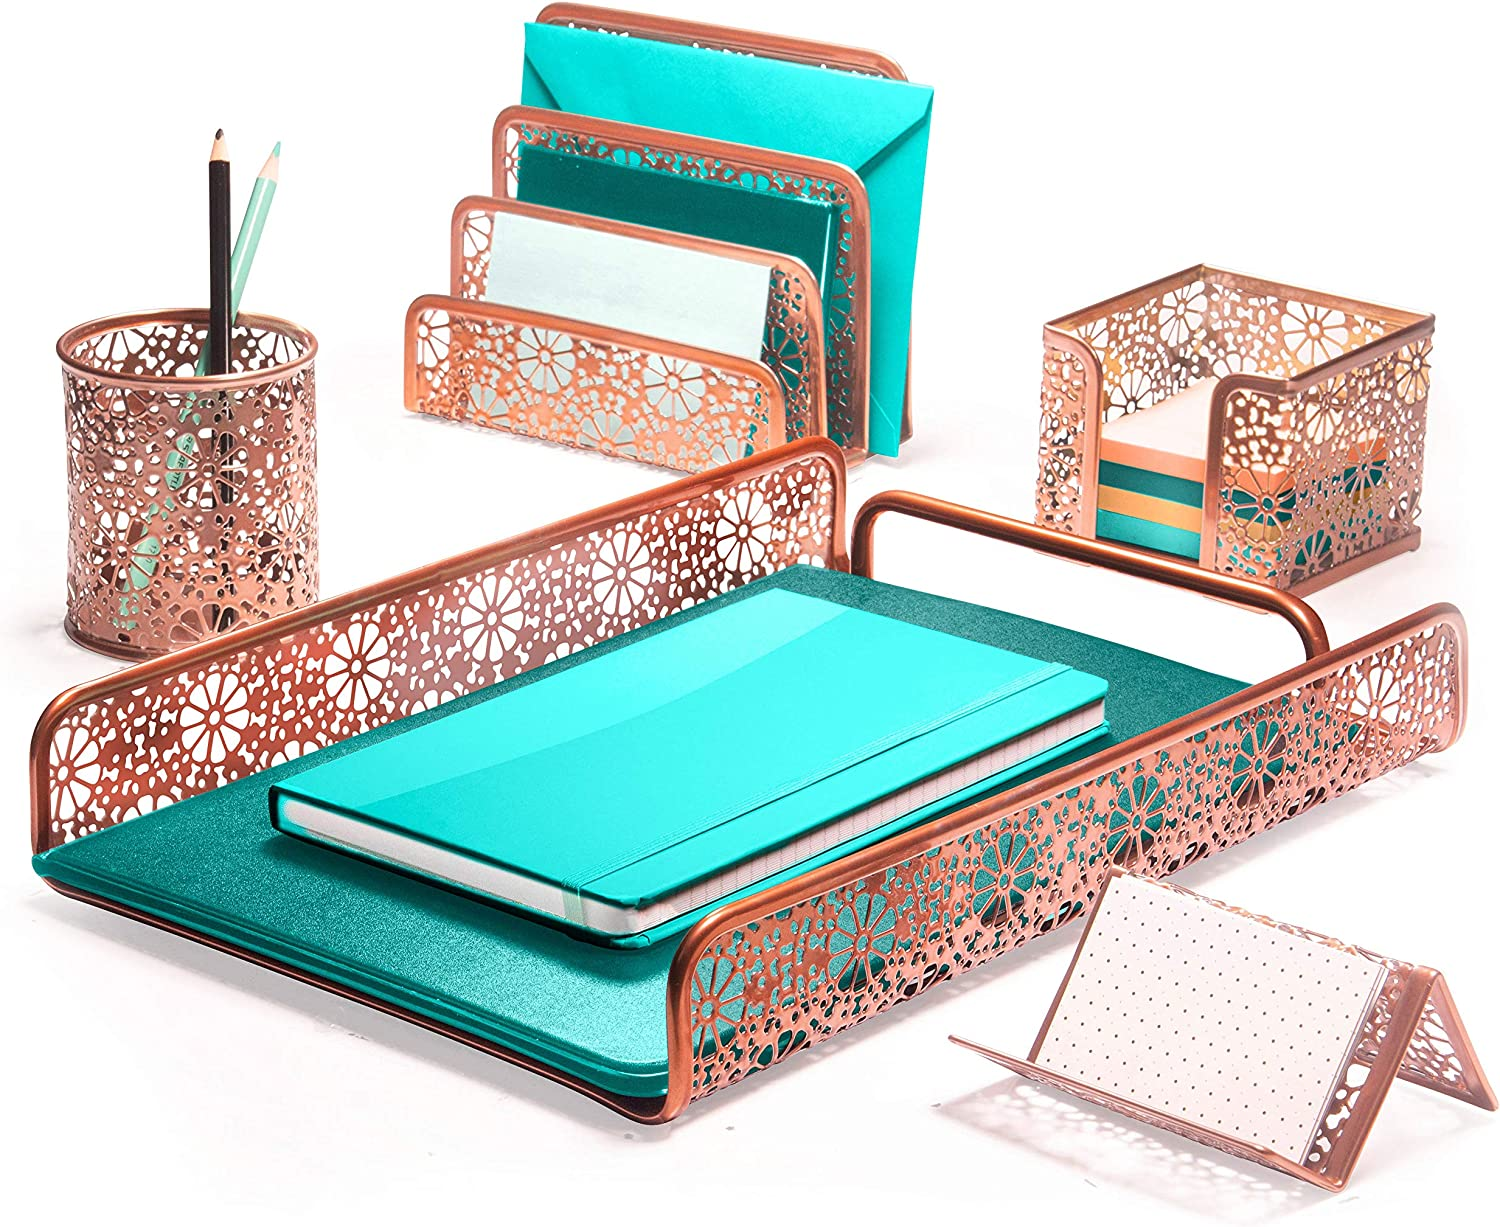 Hudstill Rose New Free Shipping Gold Cute Desk Organizer i and Indianapolis Mall Girls Set for Women